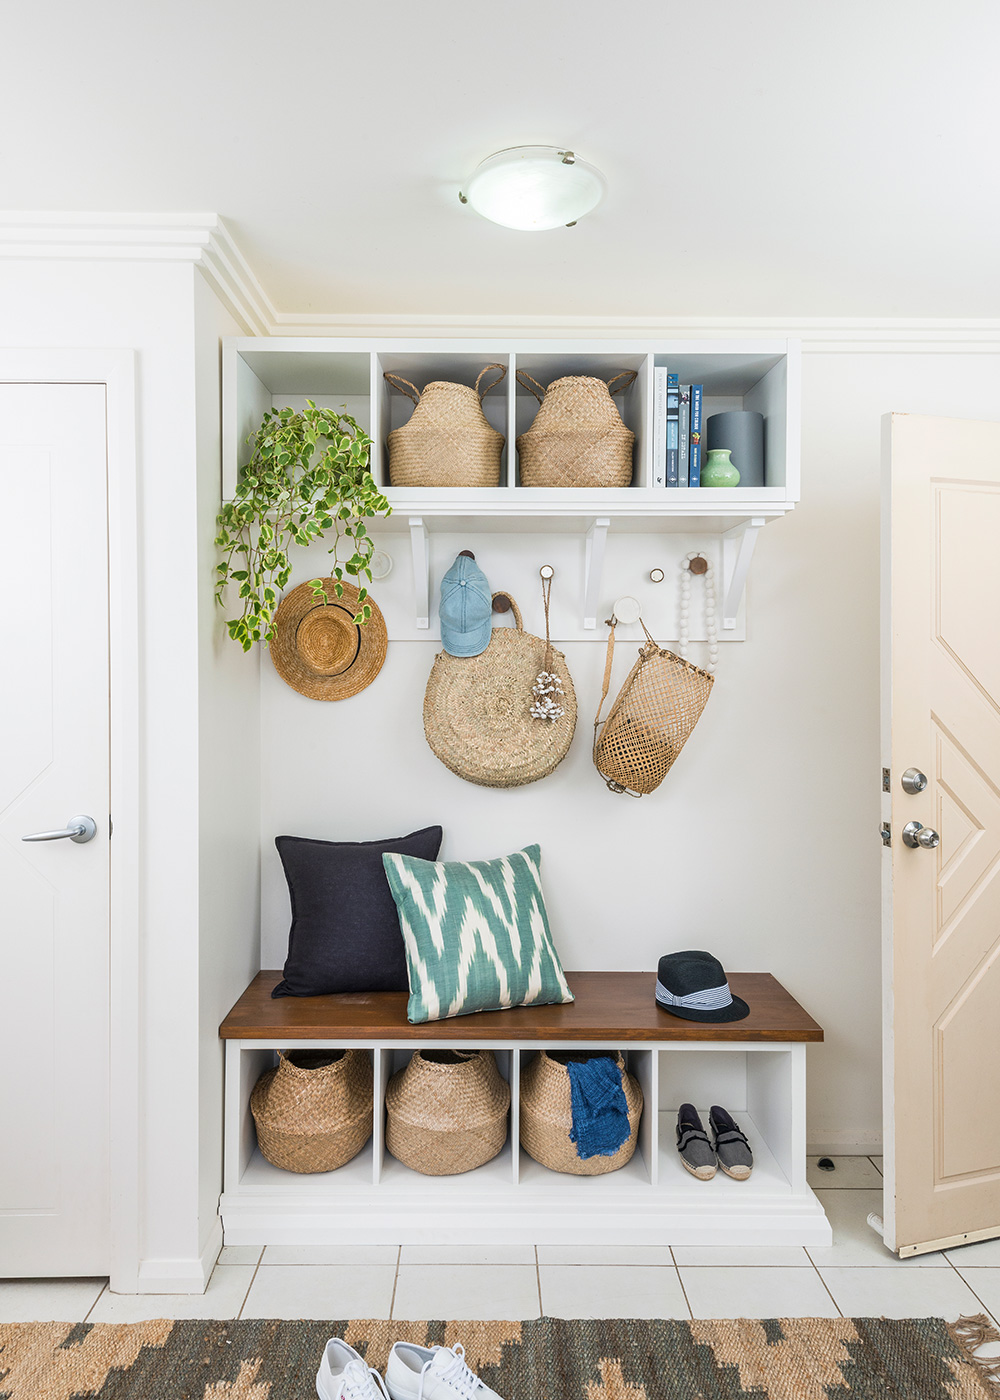 9 clever ways to stow your stuff and boost your storage Better homes and gardens episode last night